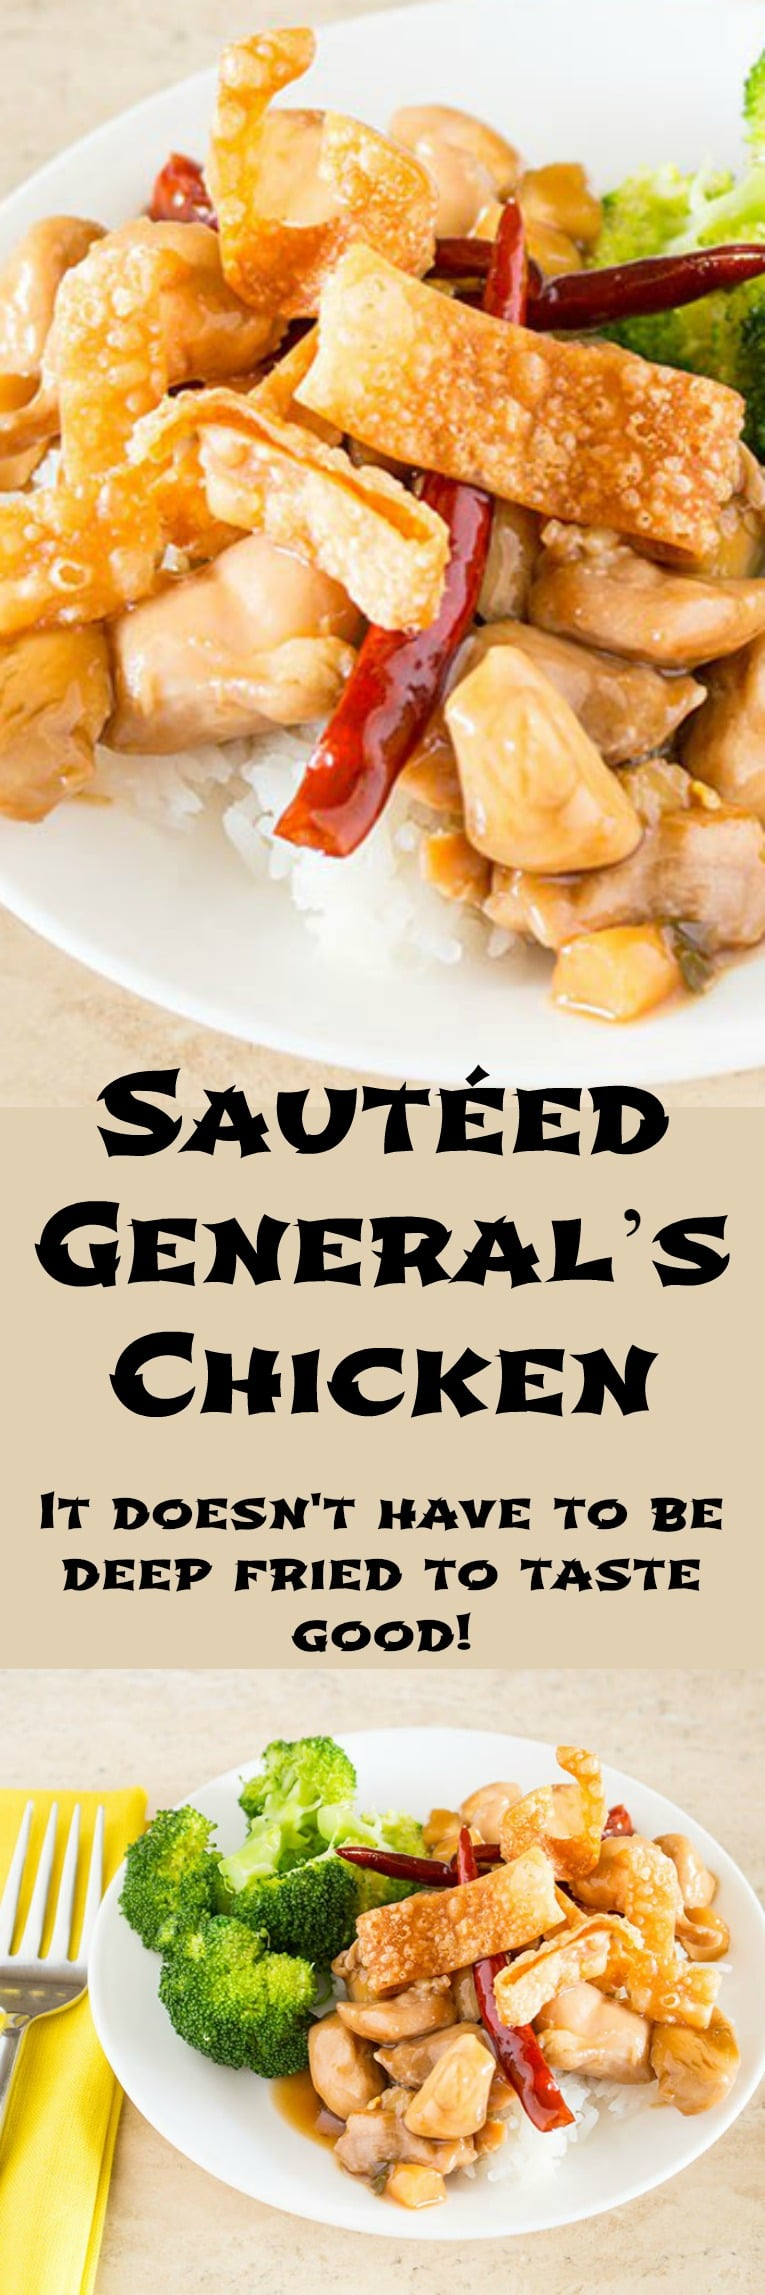 Sauteed General's Chicken is lightened up version of spicy but kind of sweet General Tso's Chicken. This one is sauteed rather than deep-fried.